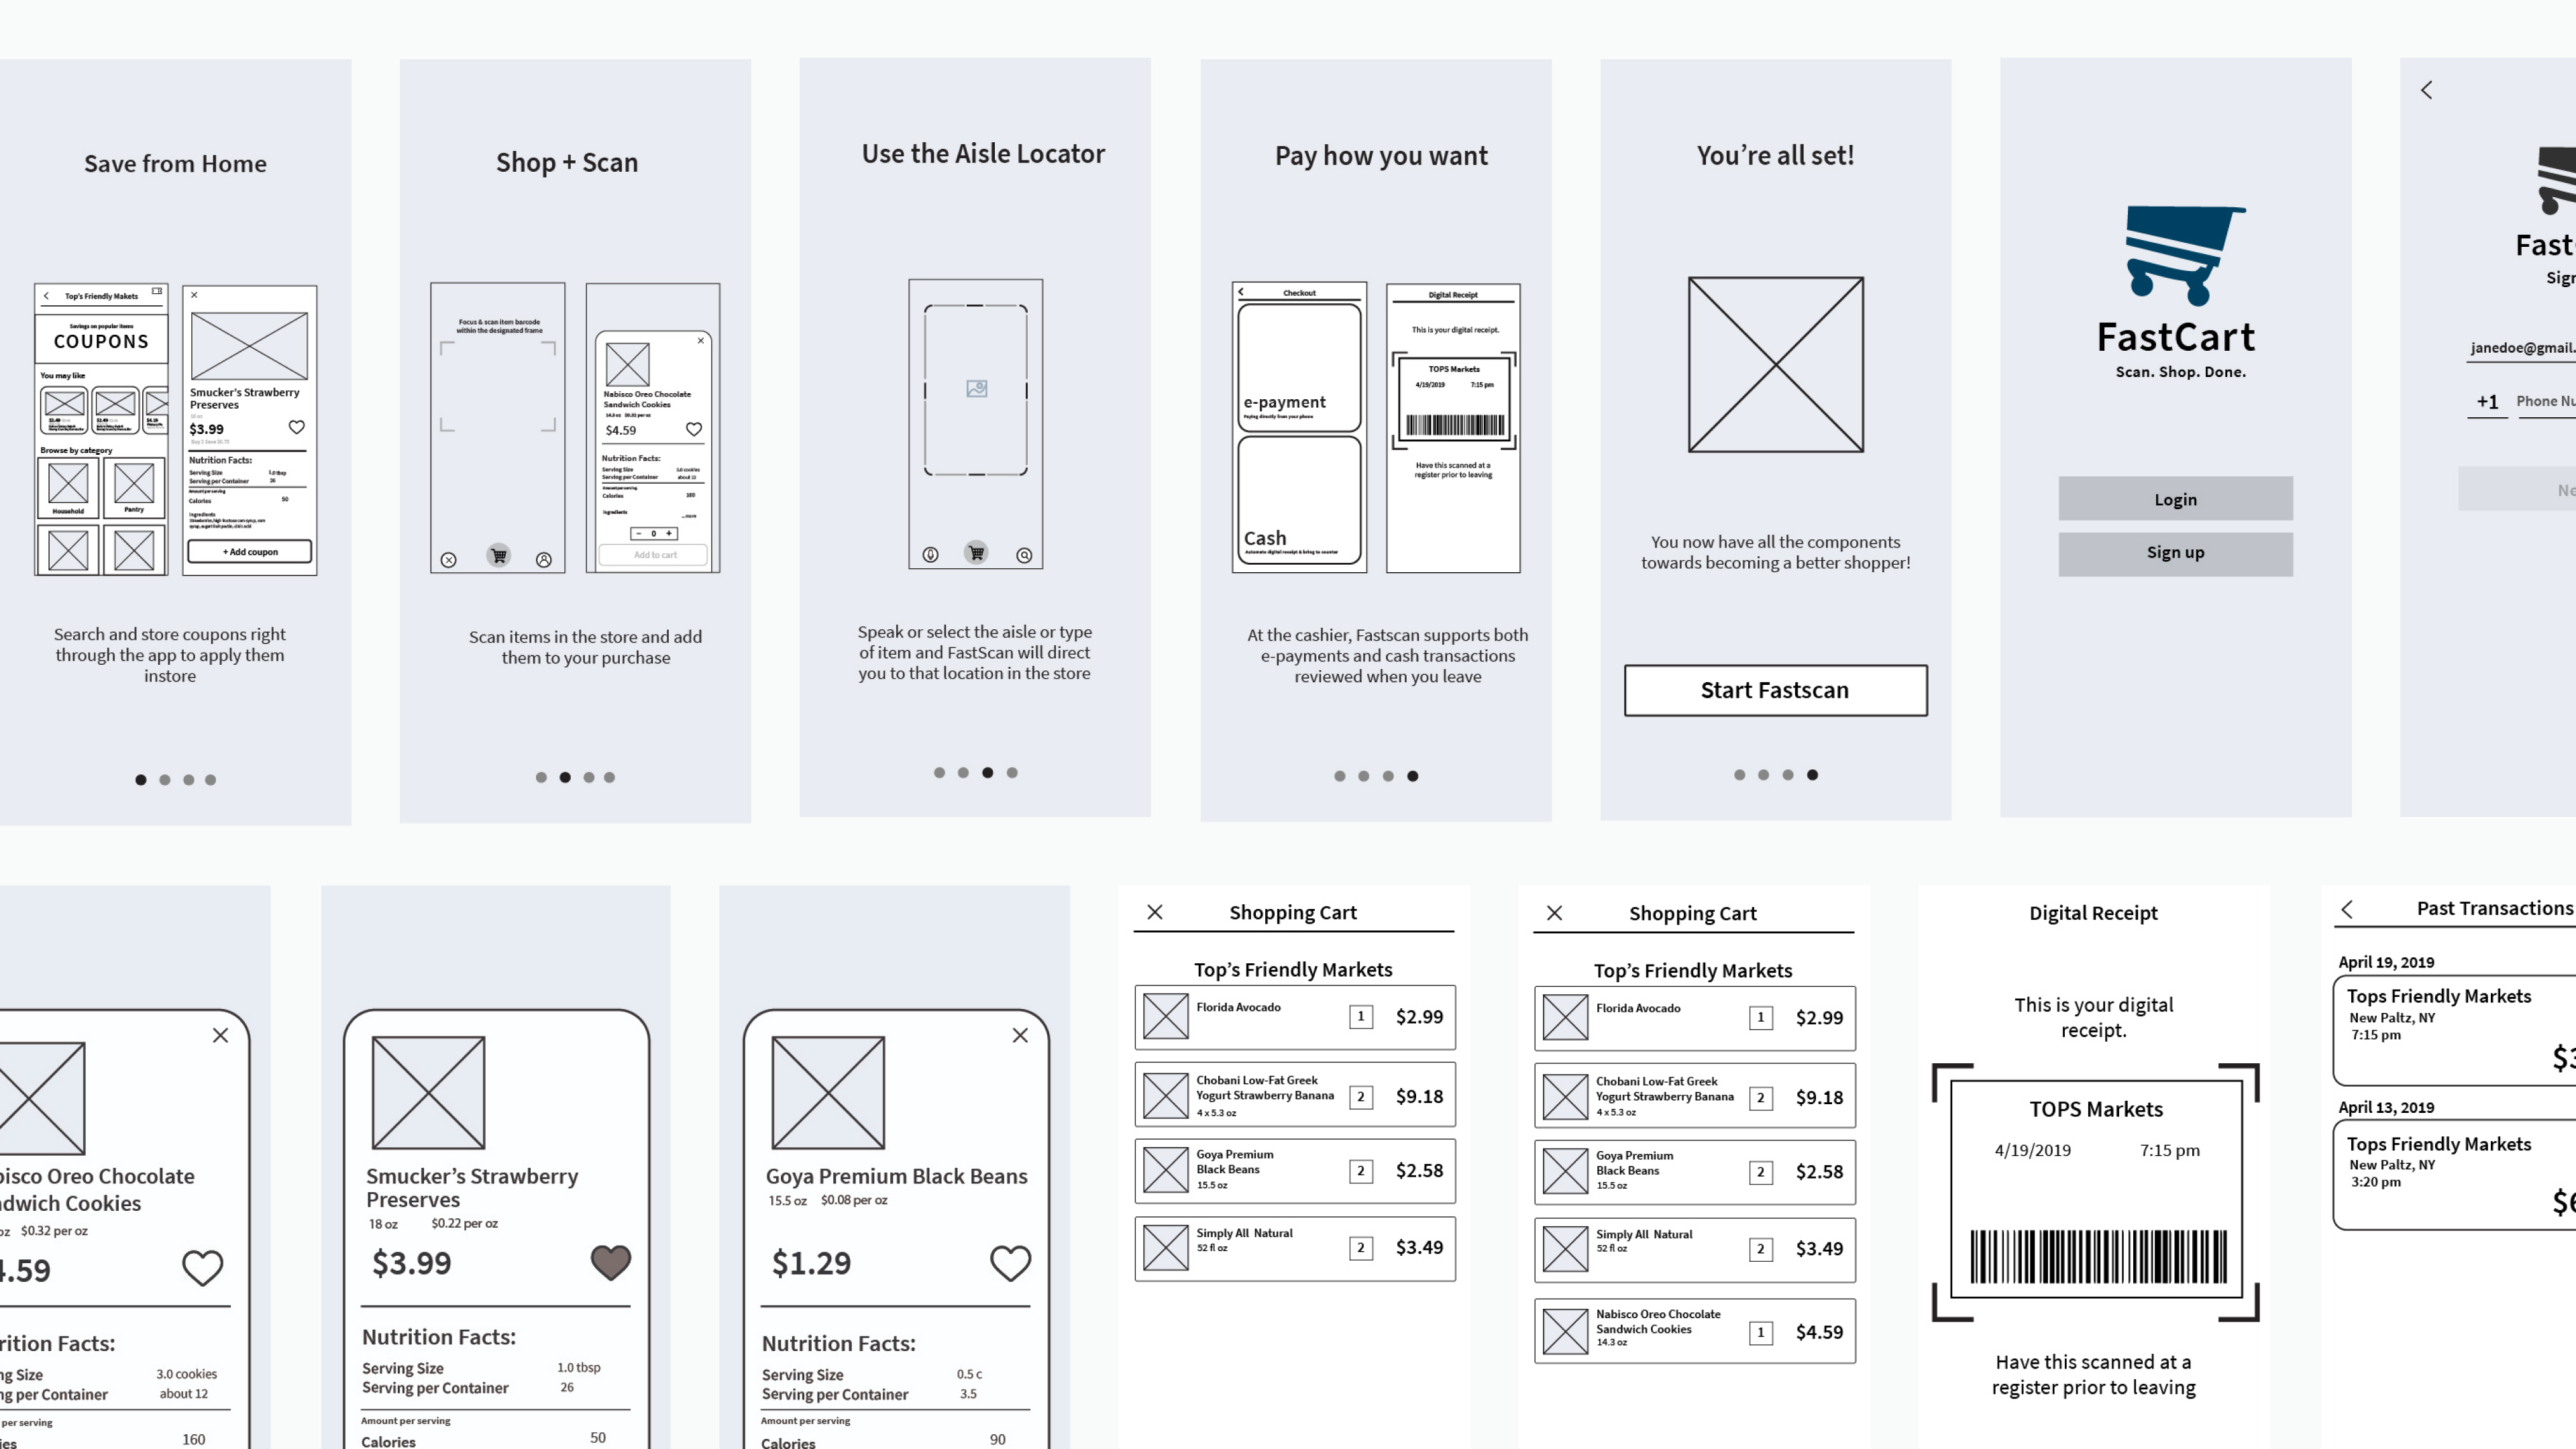 Wireframes created for the different screen instances